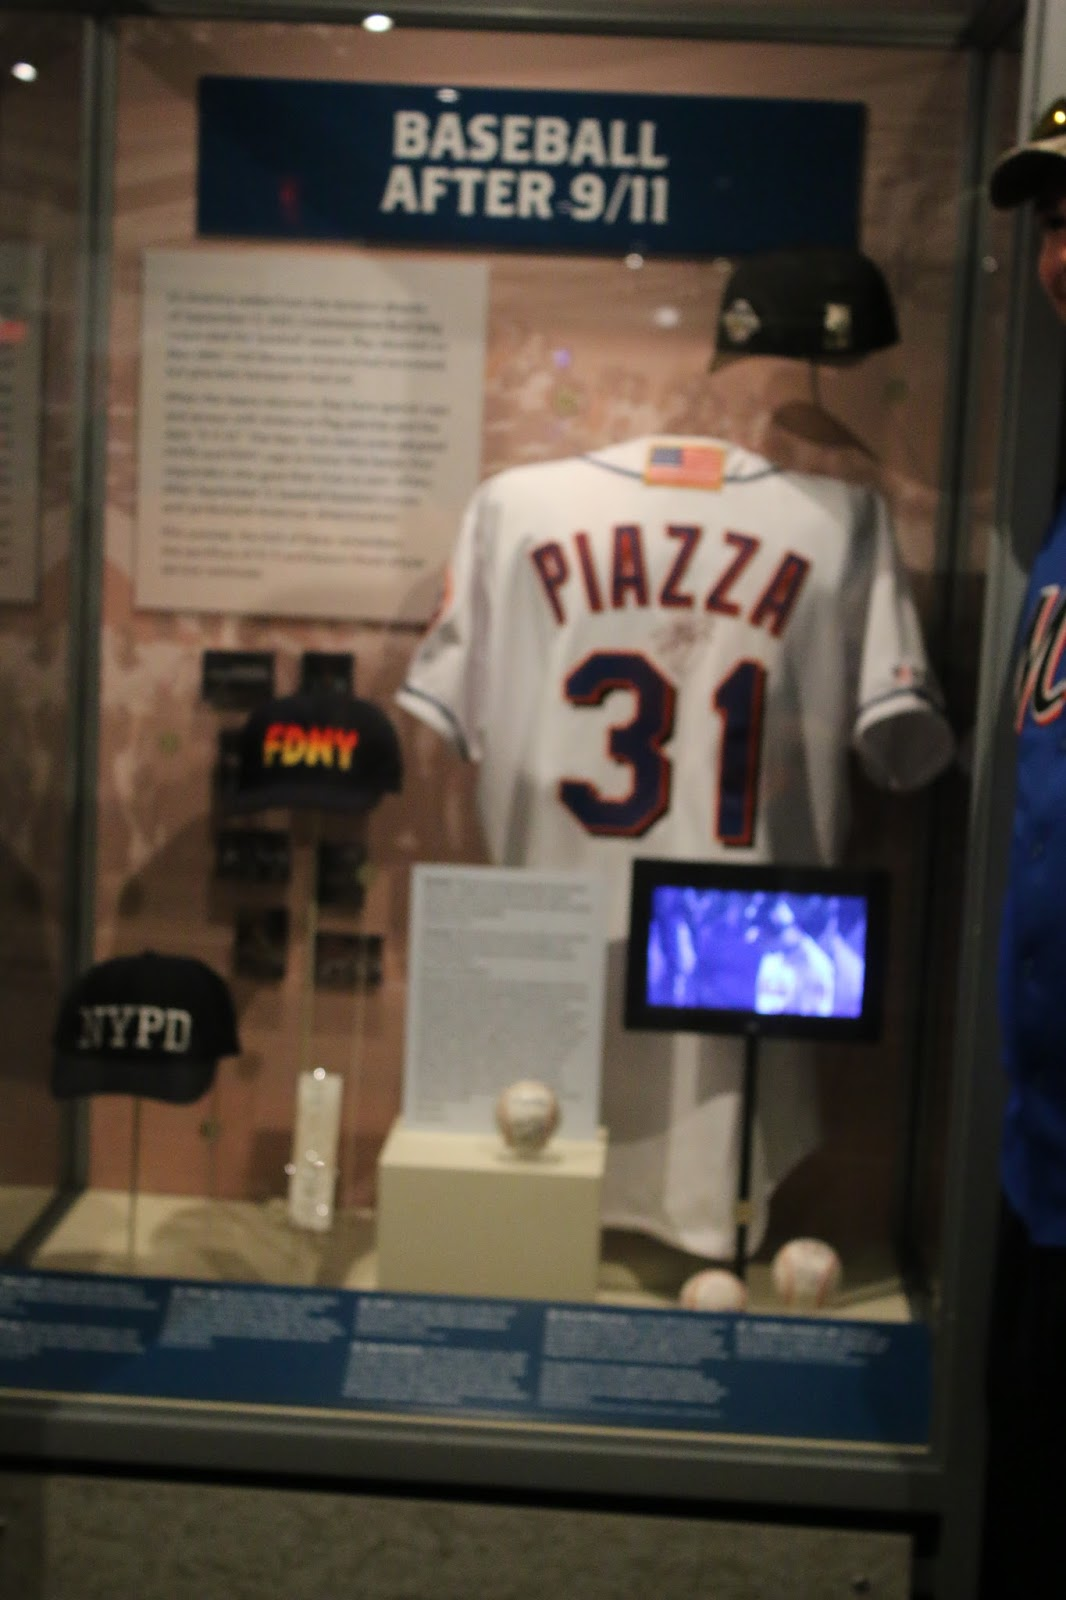 hot sale online 5235d 22cc1 TheMediagoon.com: Piazza 9/11 Jersey: The Story From The ...